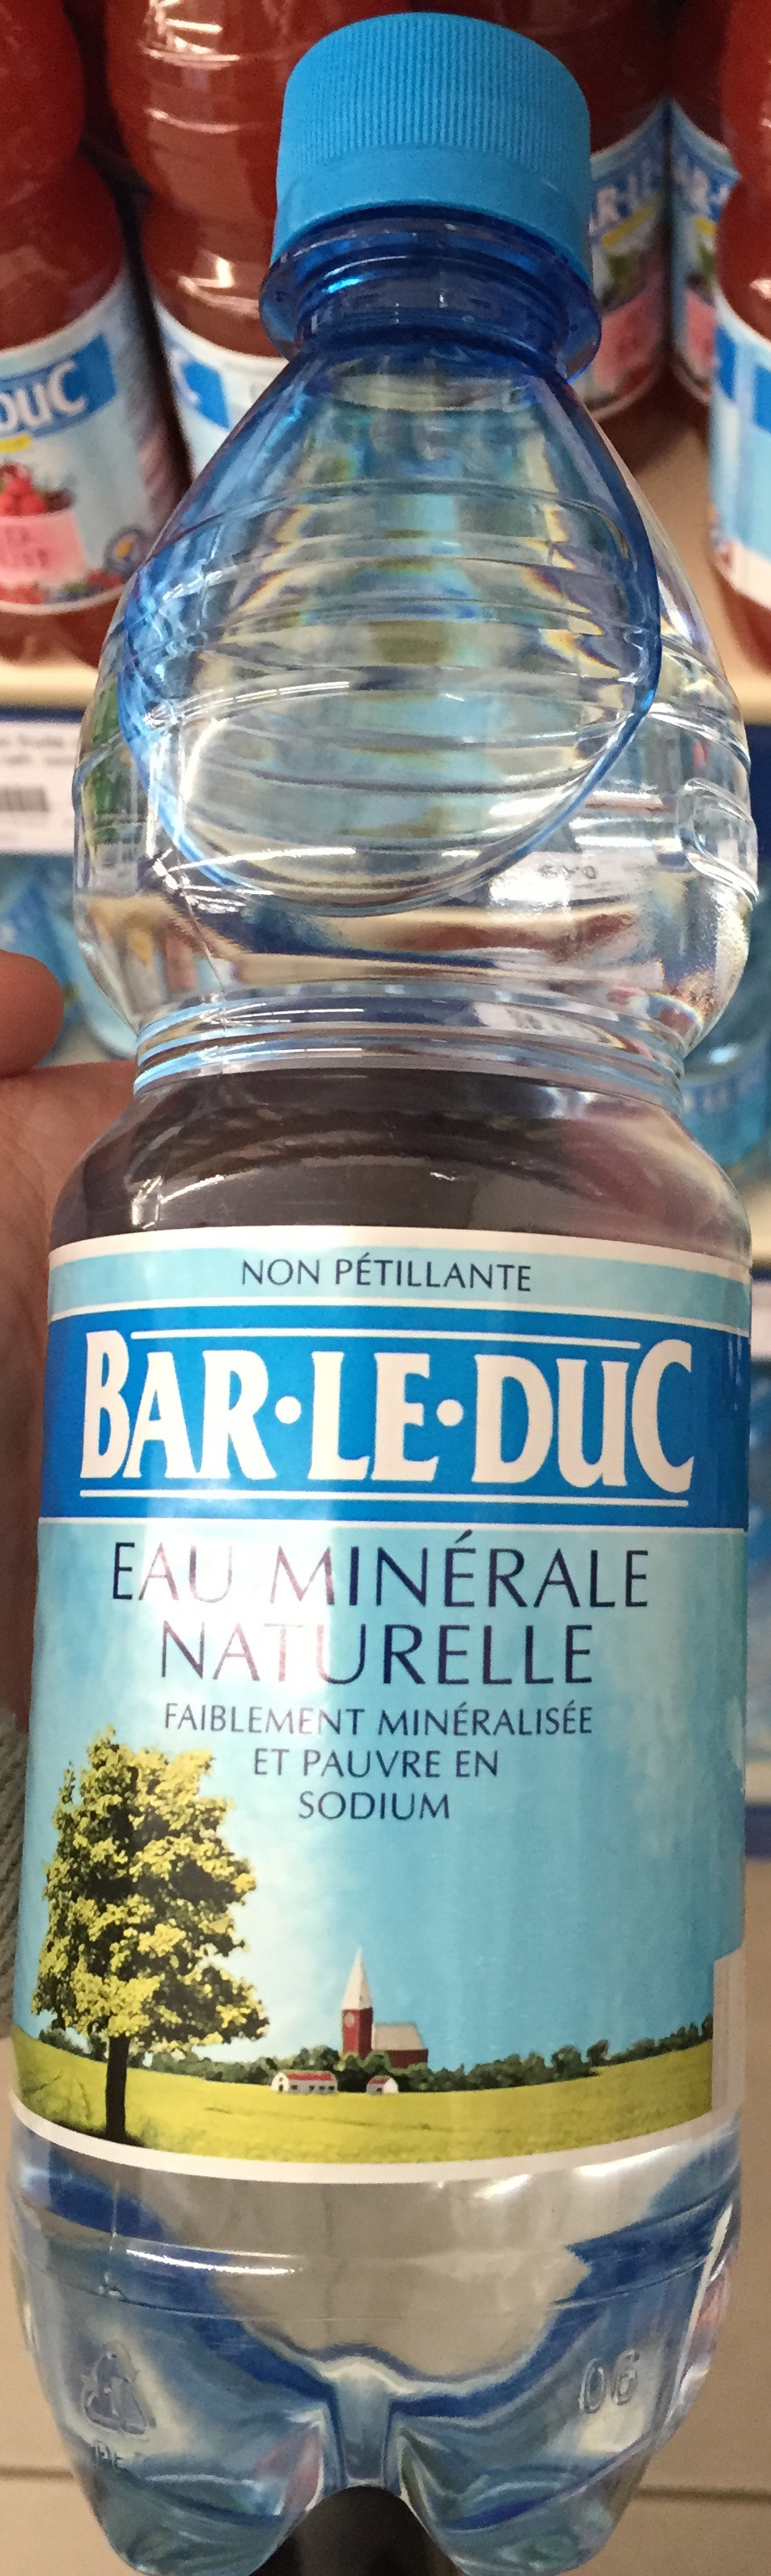 Eau min rale naturelle non p tillante bar le duc 0 5 l for Piscine bar le duc